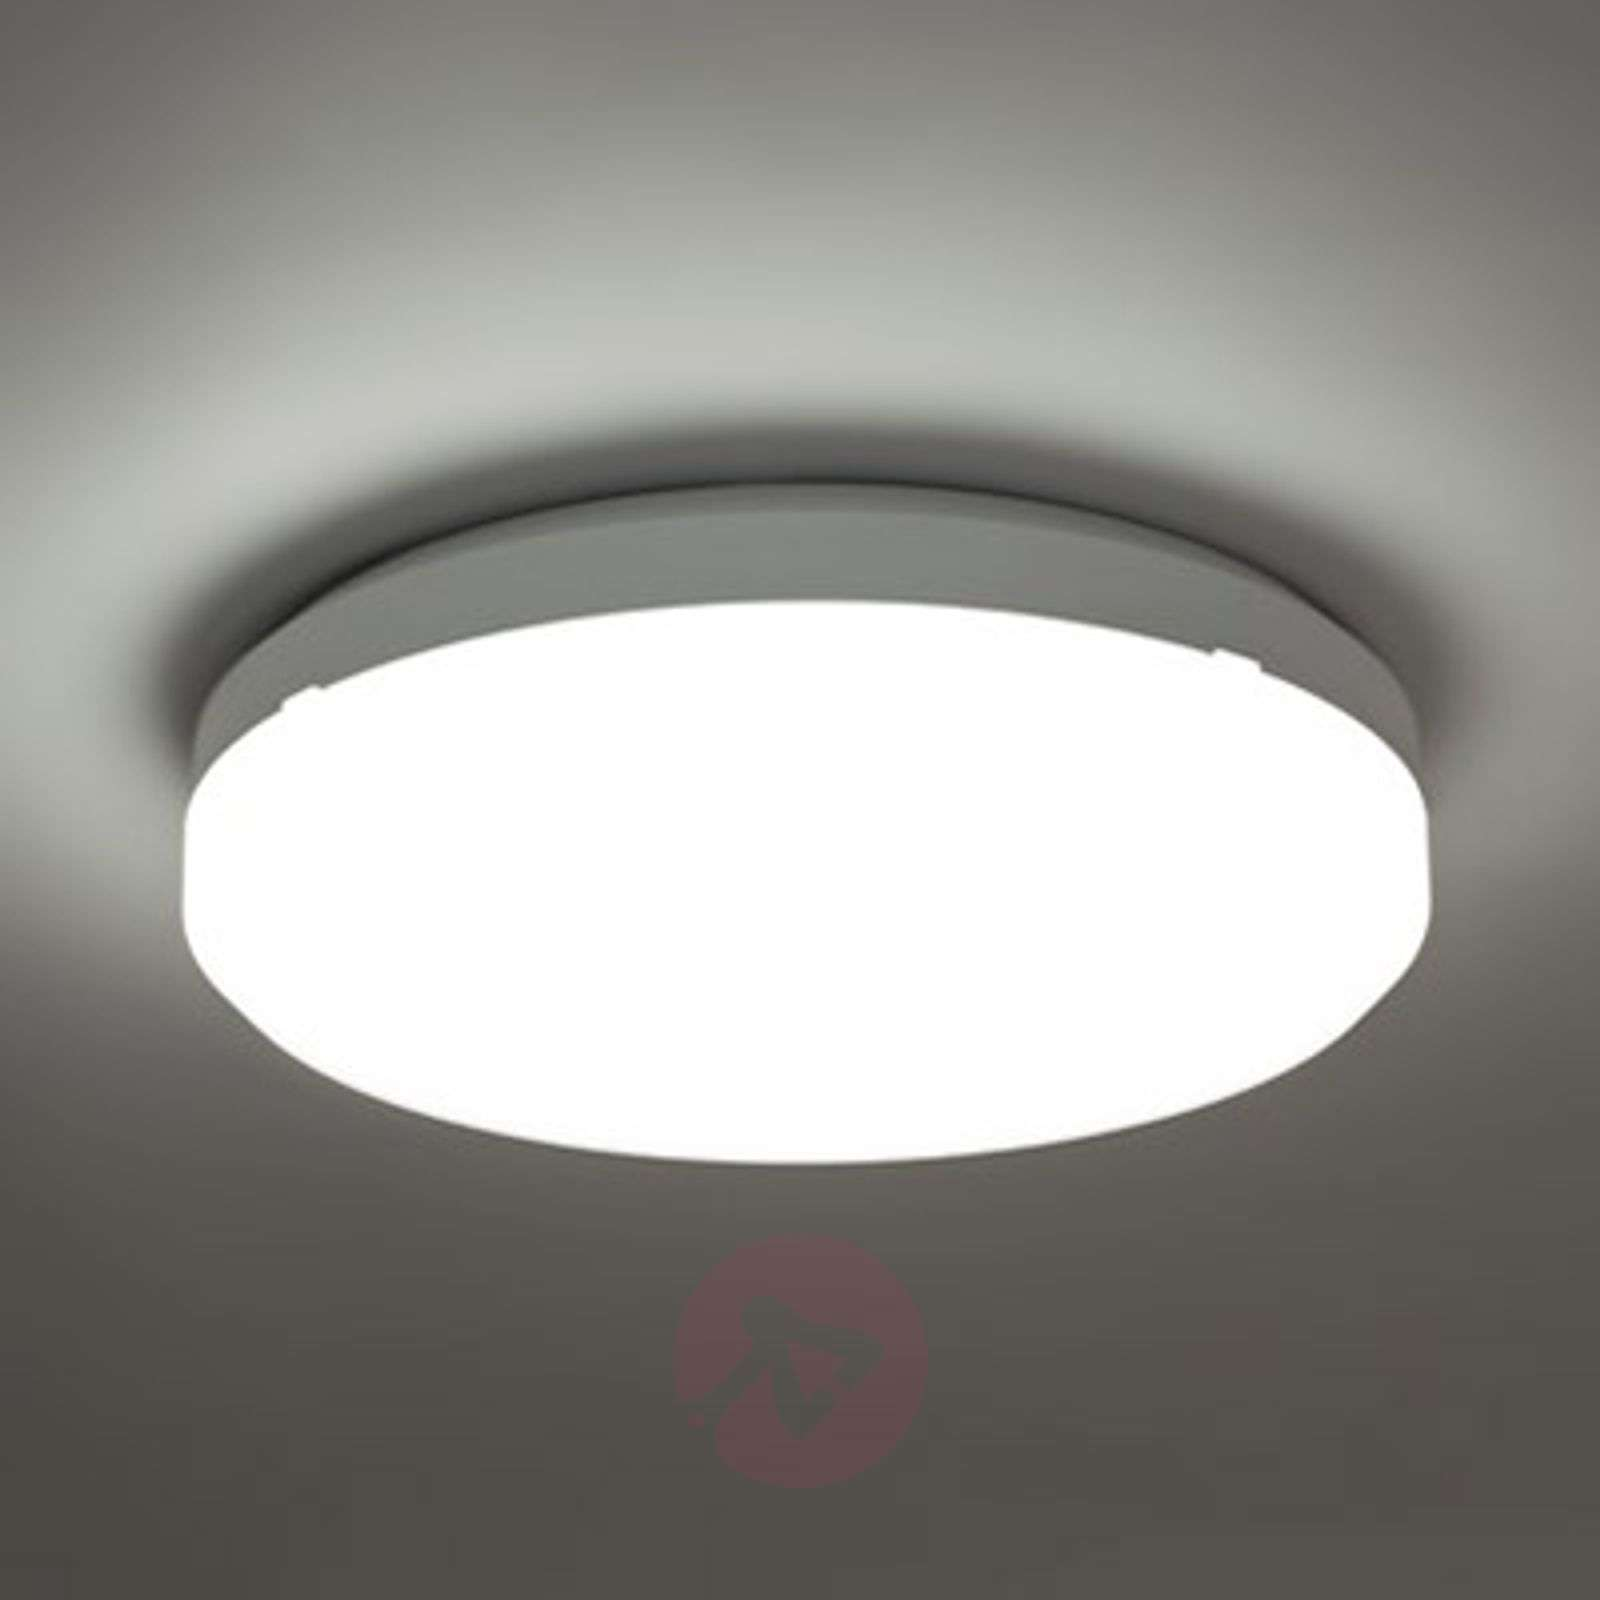 LED-kattovalaisin Sun 15, IP65-1018311X-02